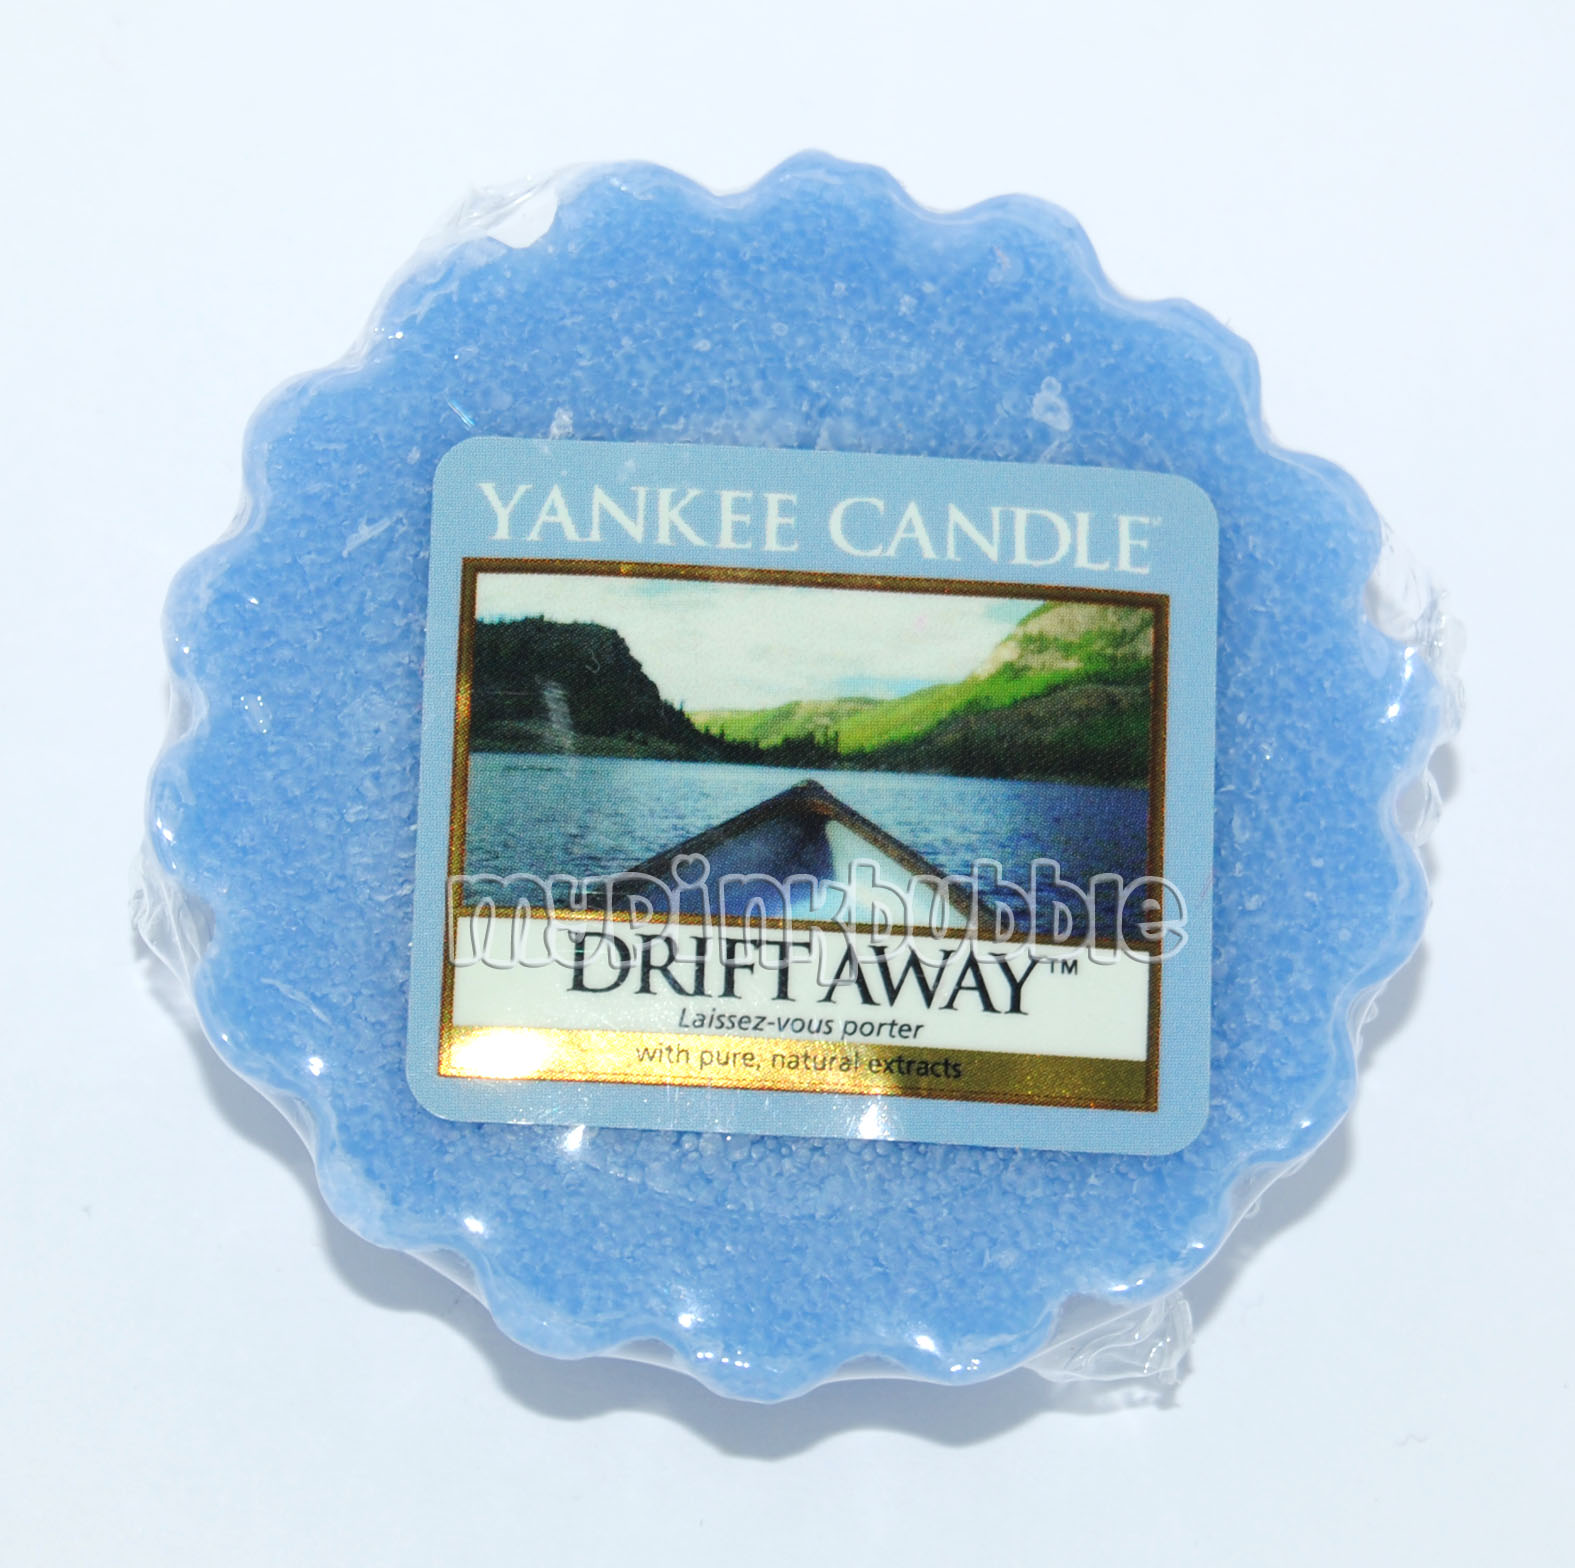 Yankee Candle Drift Away